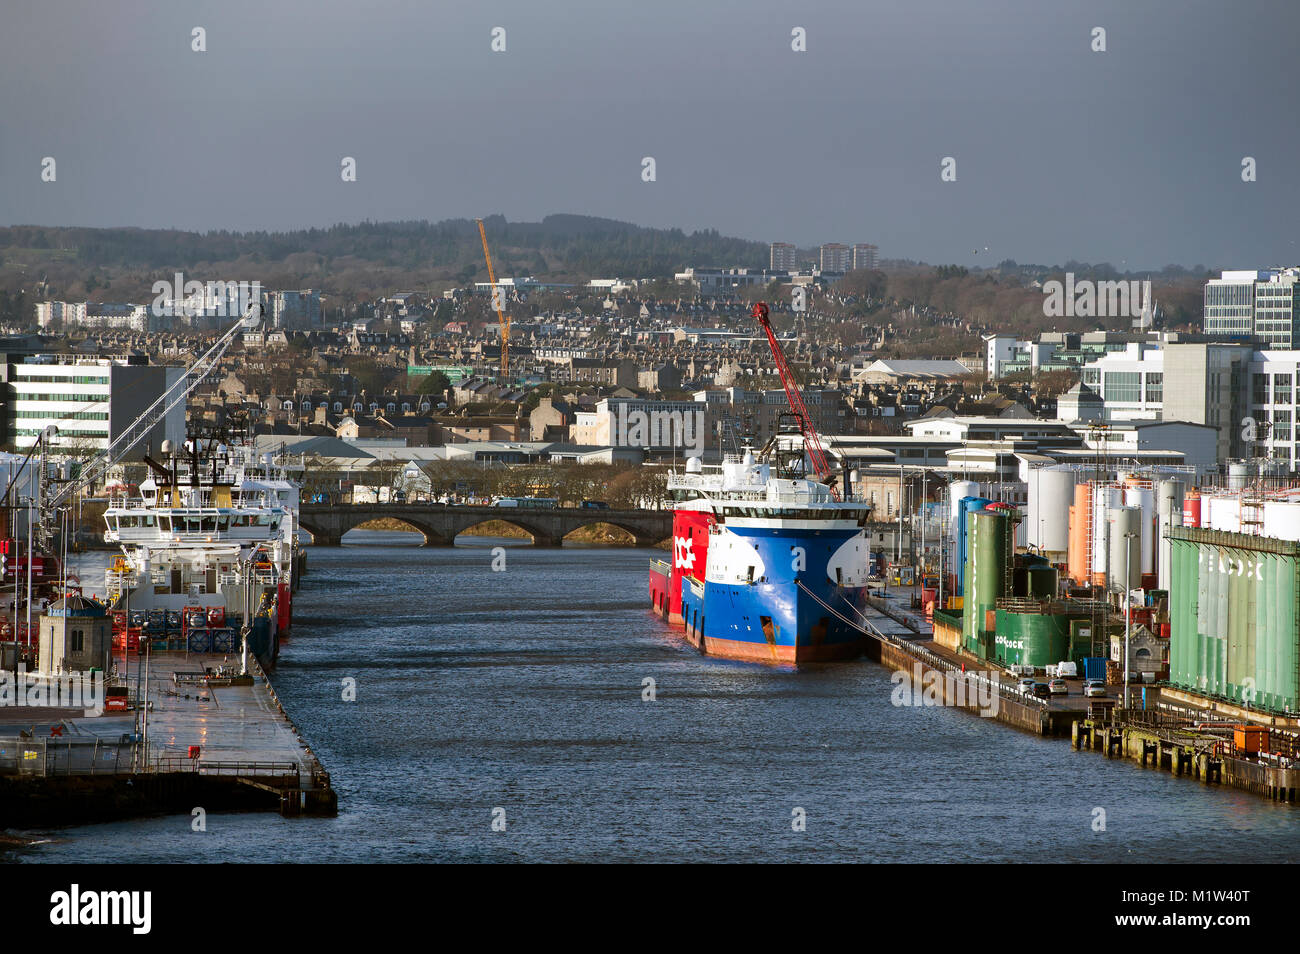 February 1st 2018: A view of Aberdeen harbour and city centre, Aberdeen, Scotland, UK . - Stock Image